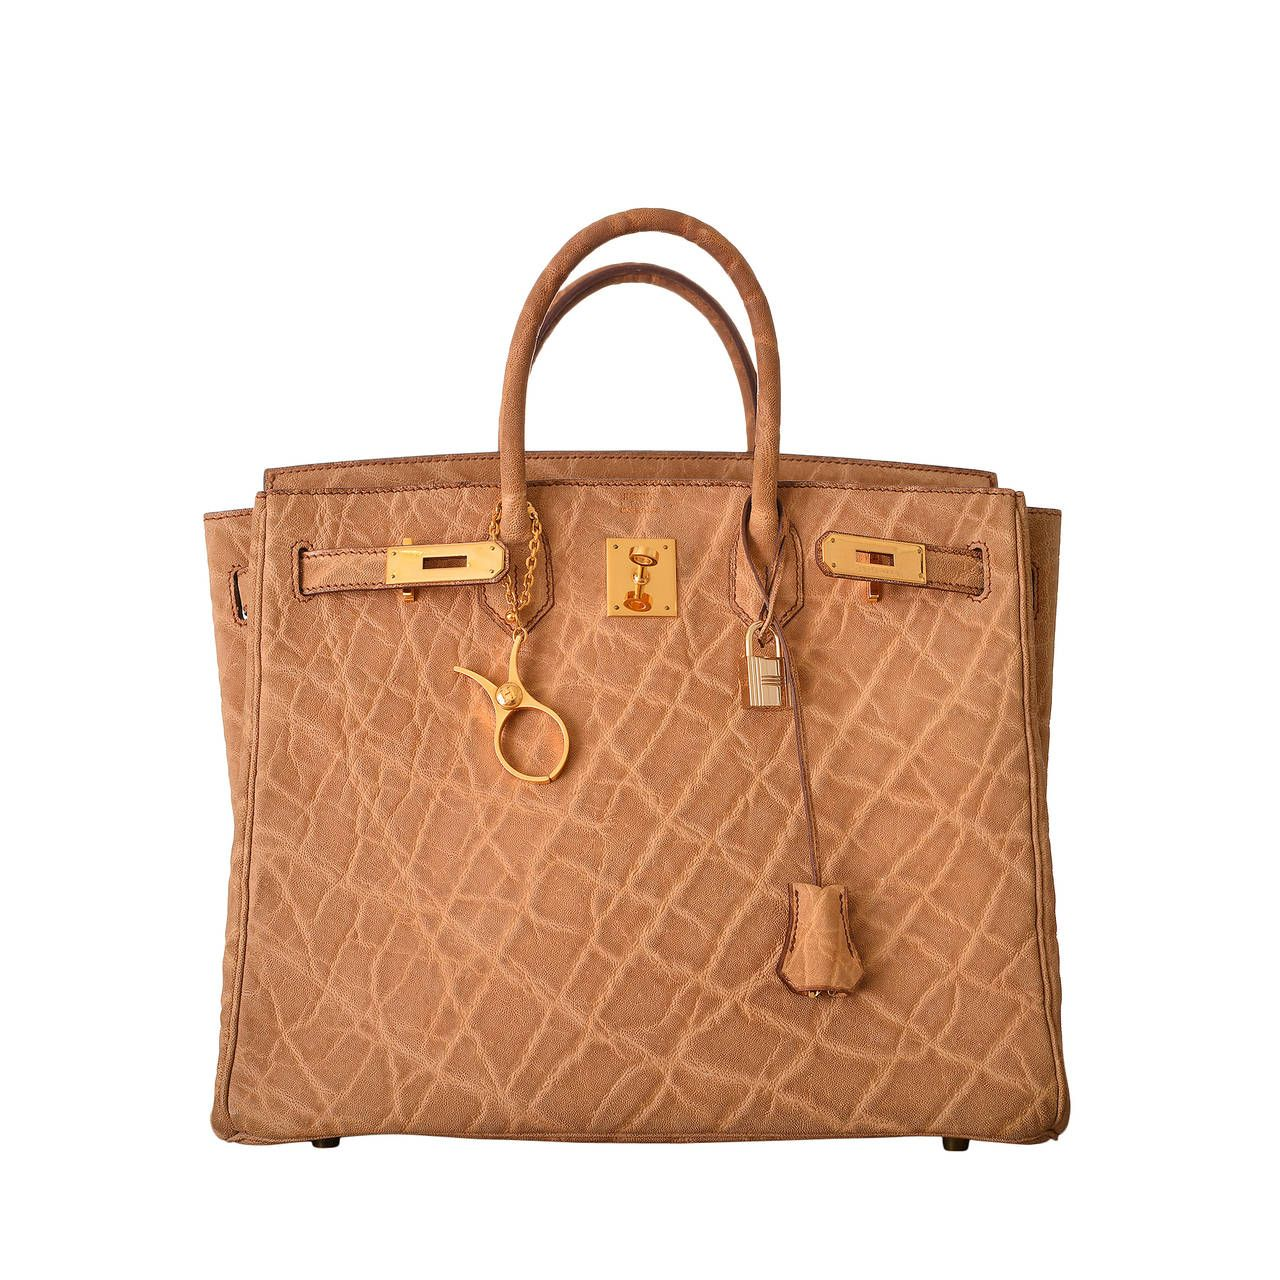 7776f437bfc6 HERMES BIRKIN BAG HAC 32CM ELEPHANT SKIN WITH GOLD HARDWARE SUPER RARE  JaneFinds